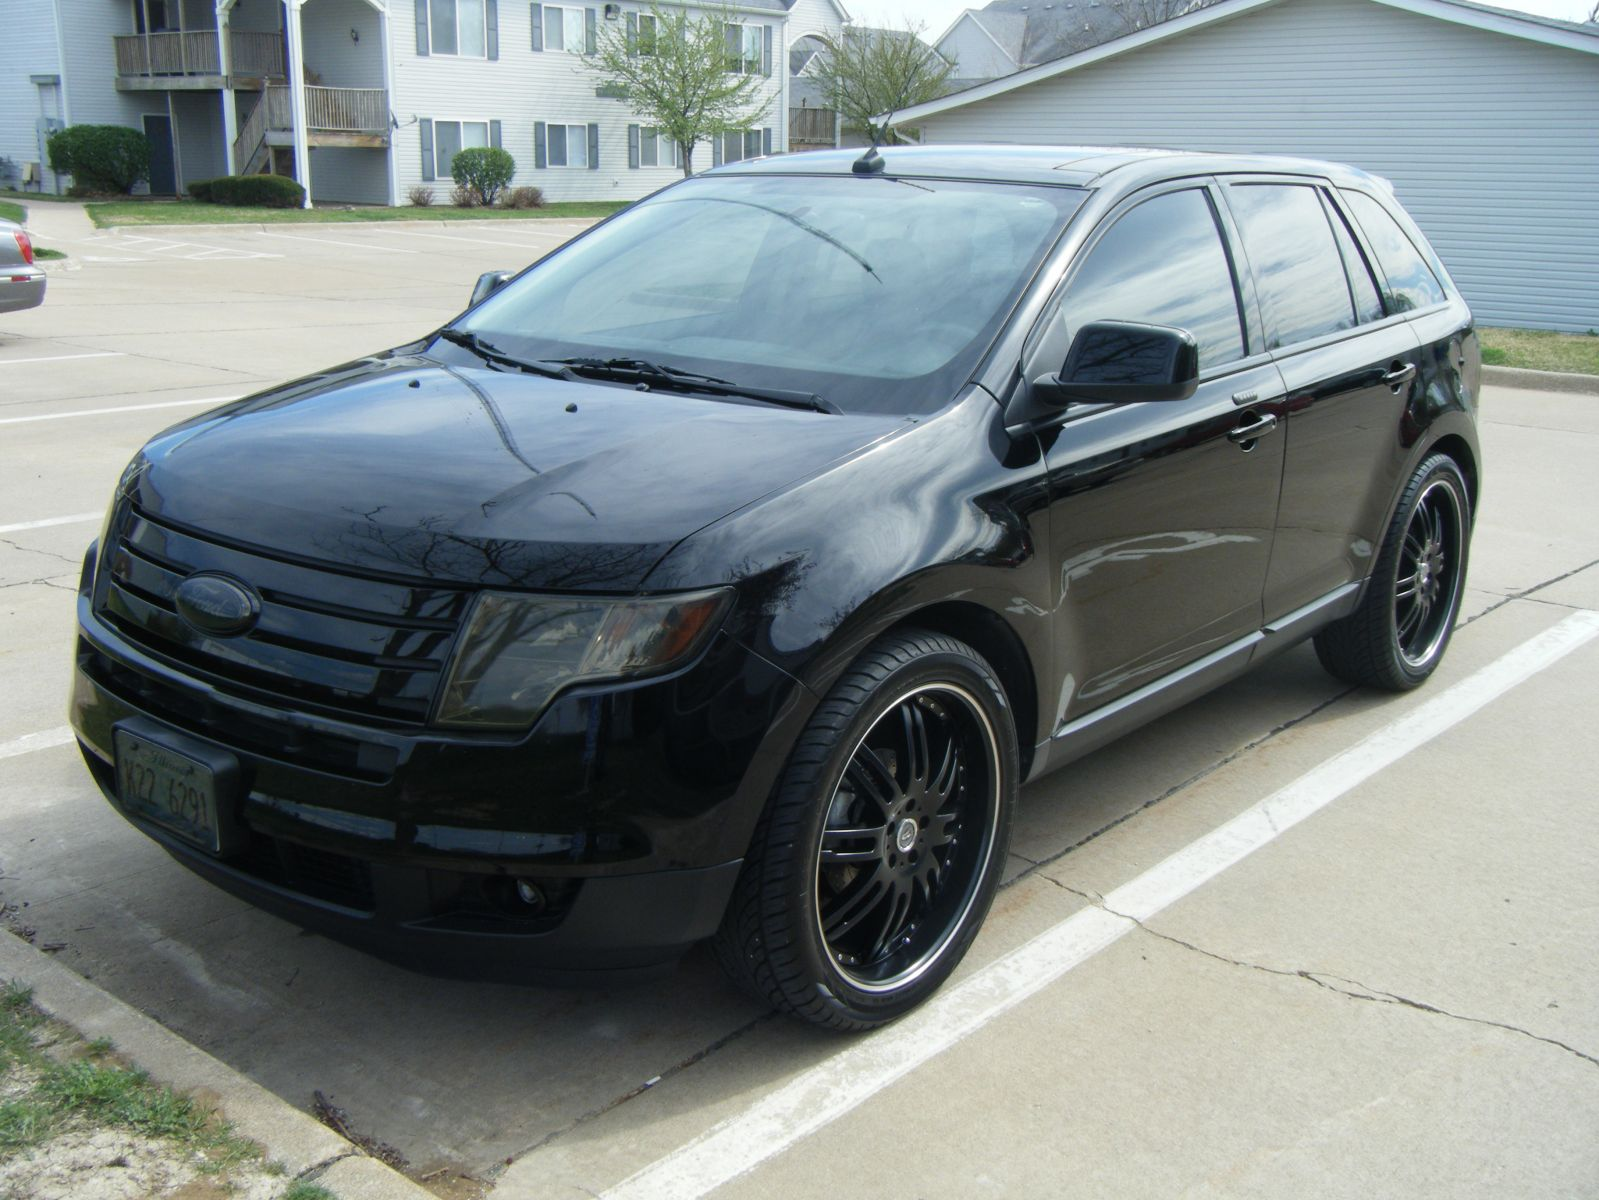 Blacked Out Ford Explorer >> Ford Edge Blacked Out   Autos Post